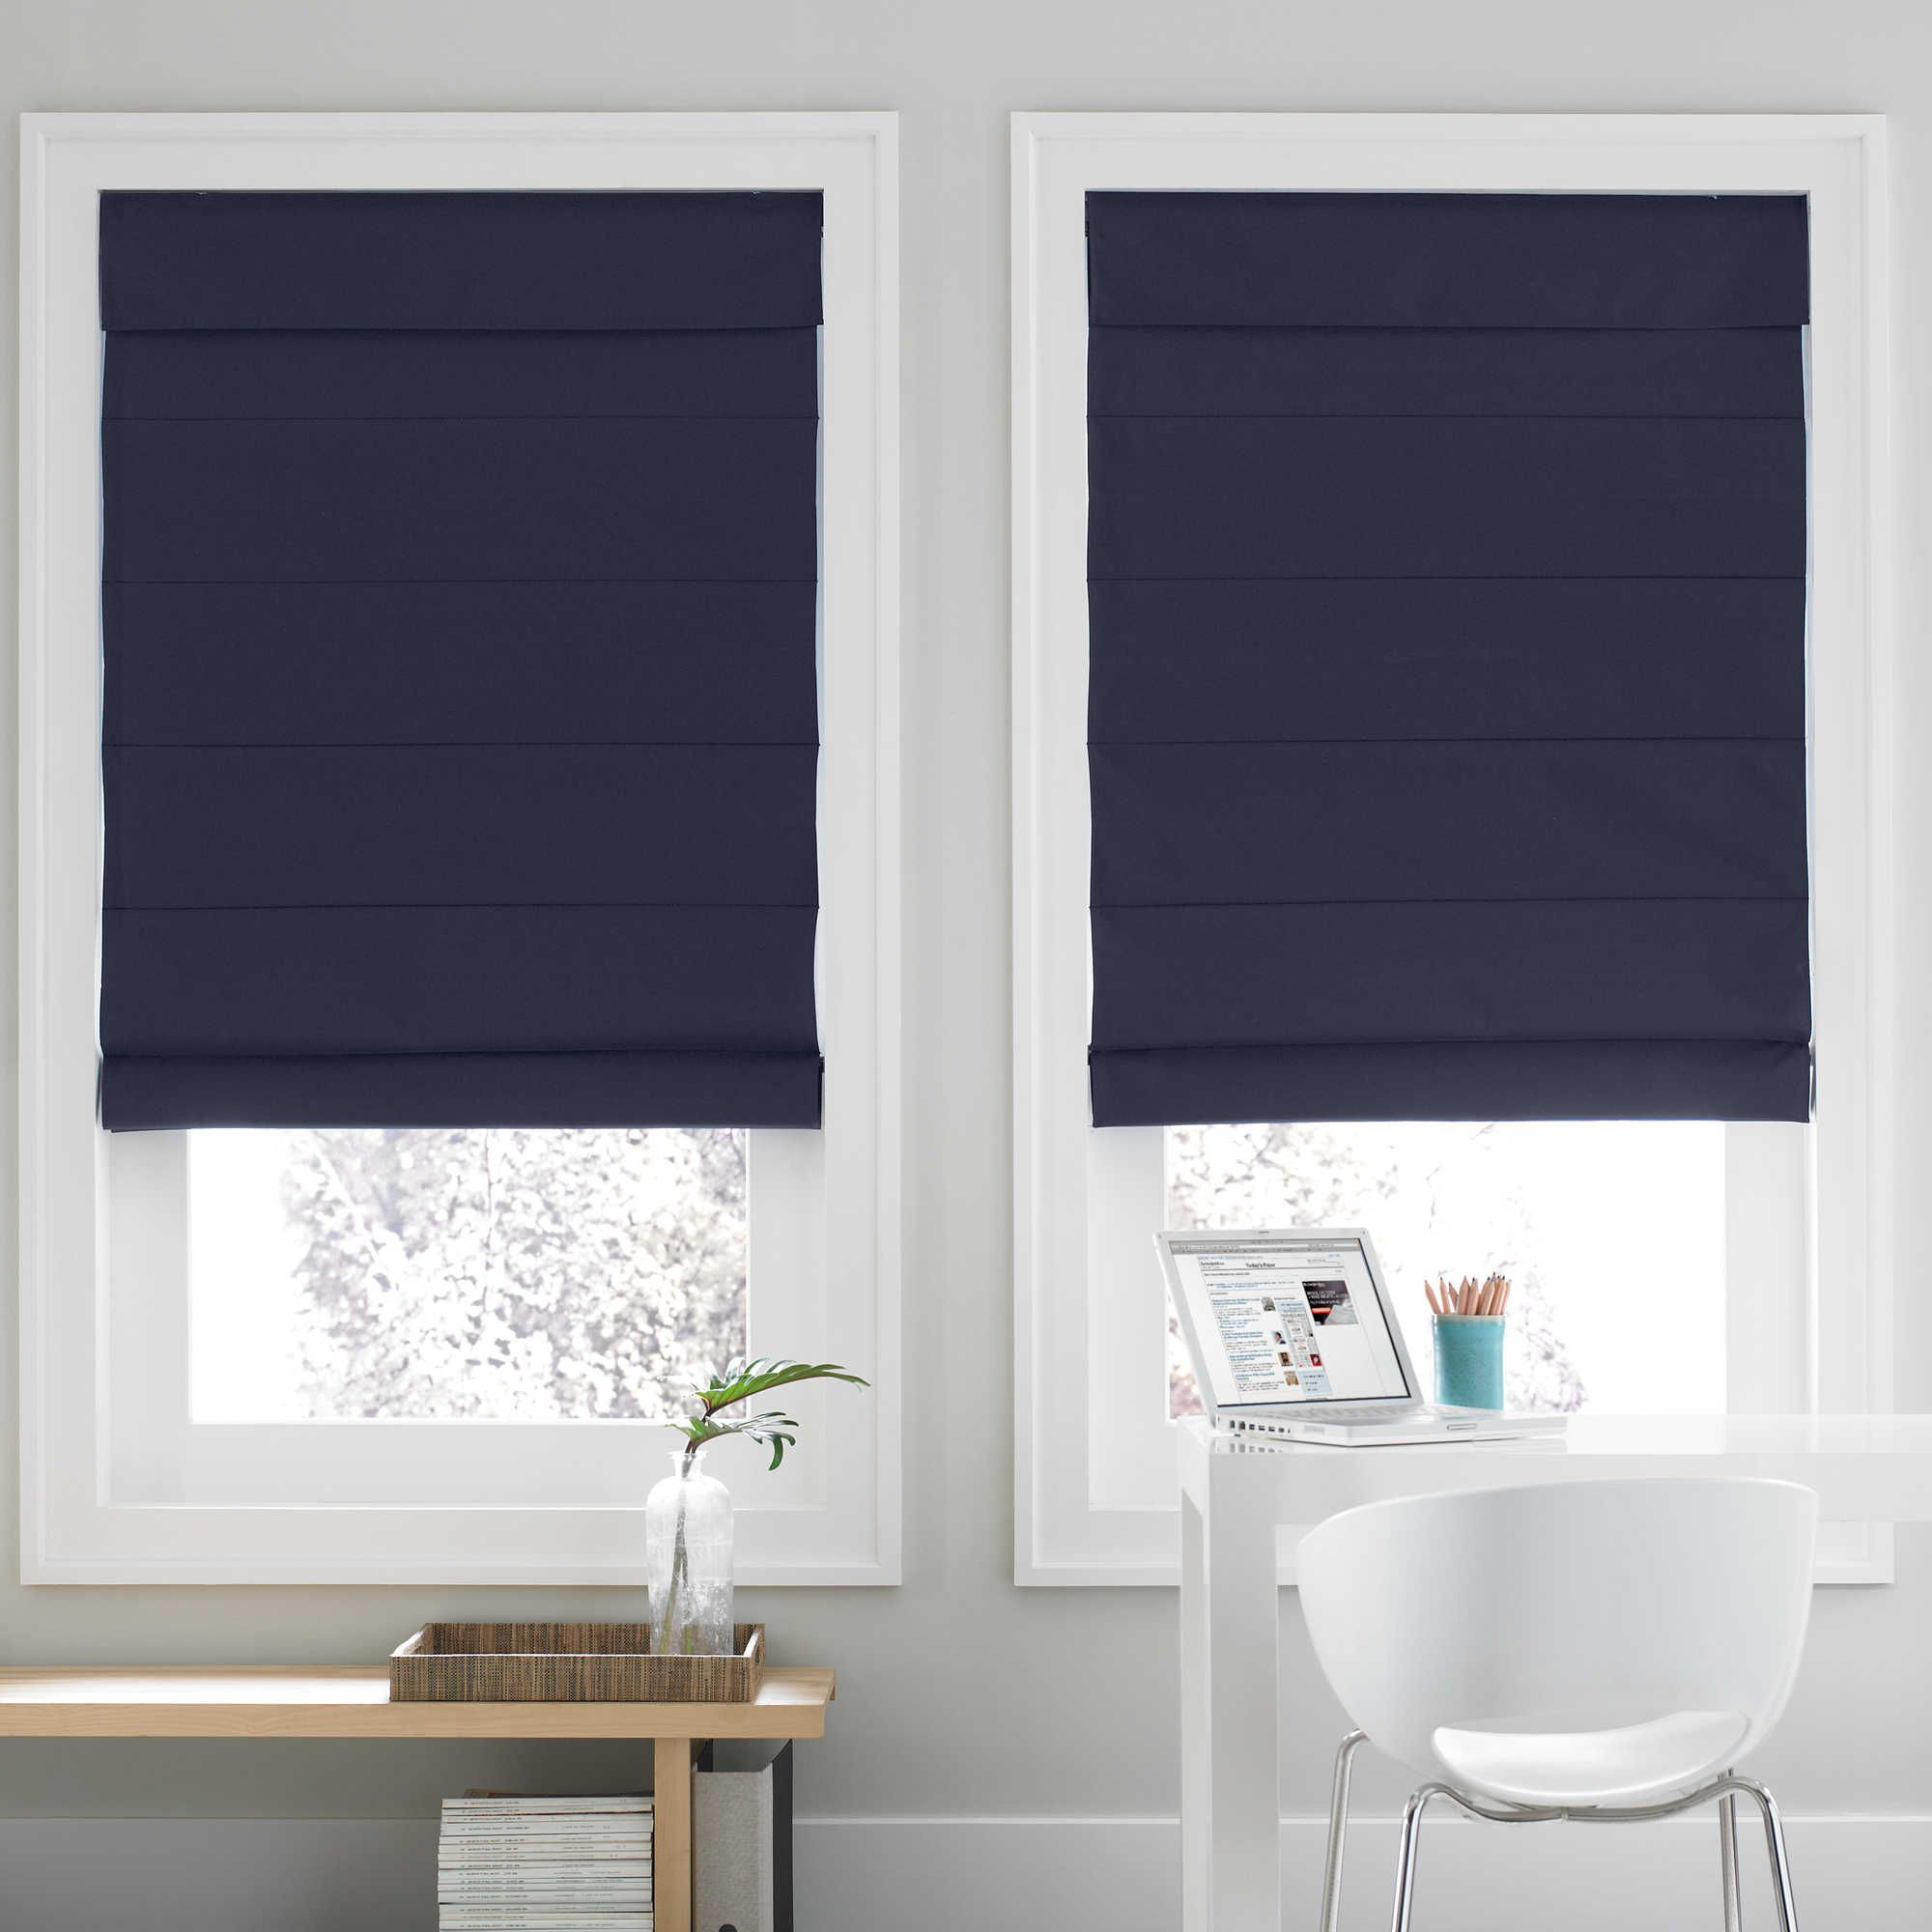 shades verona coverings comfortex window cordless color cellular lr cell blinds mid